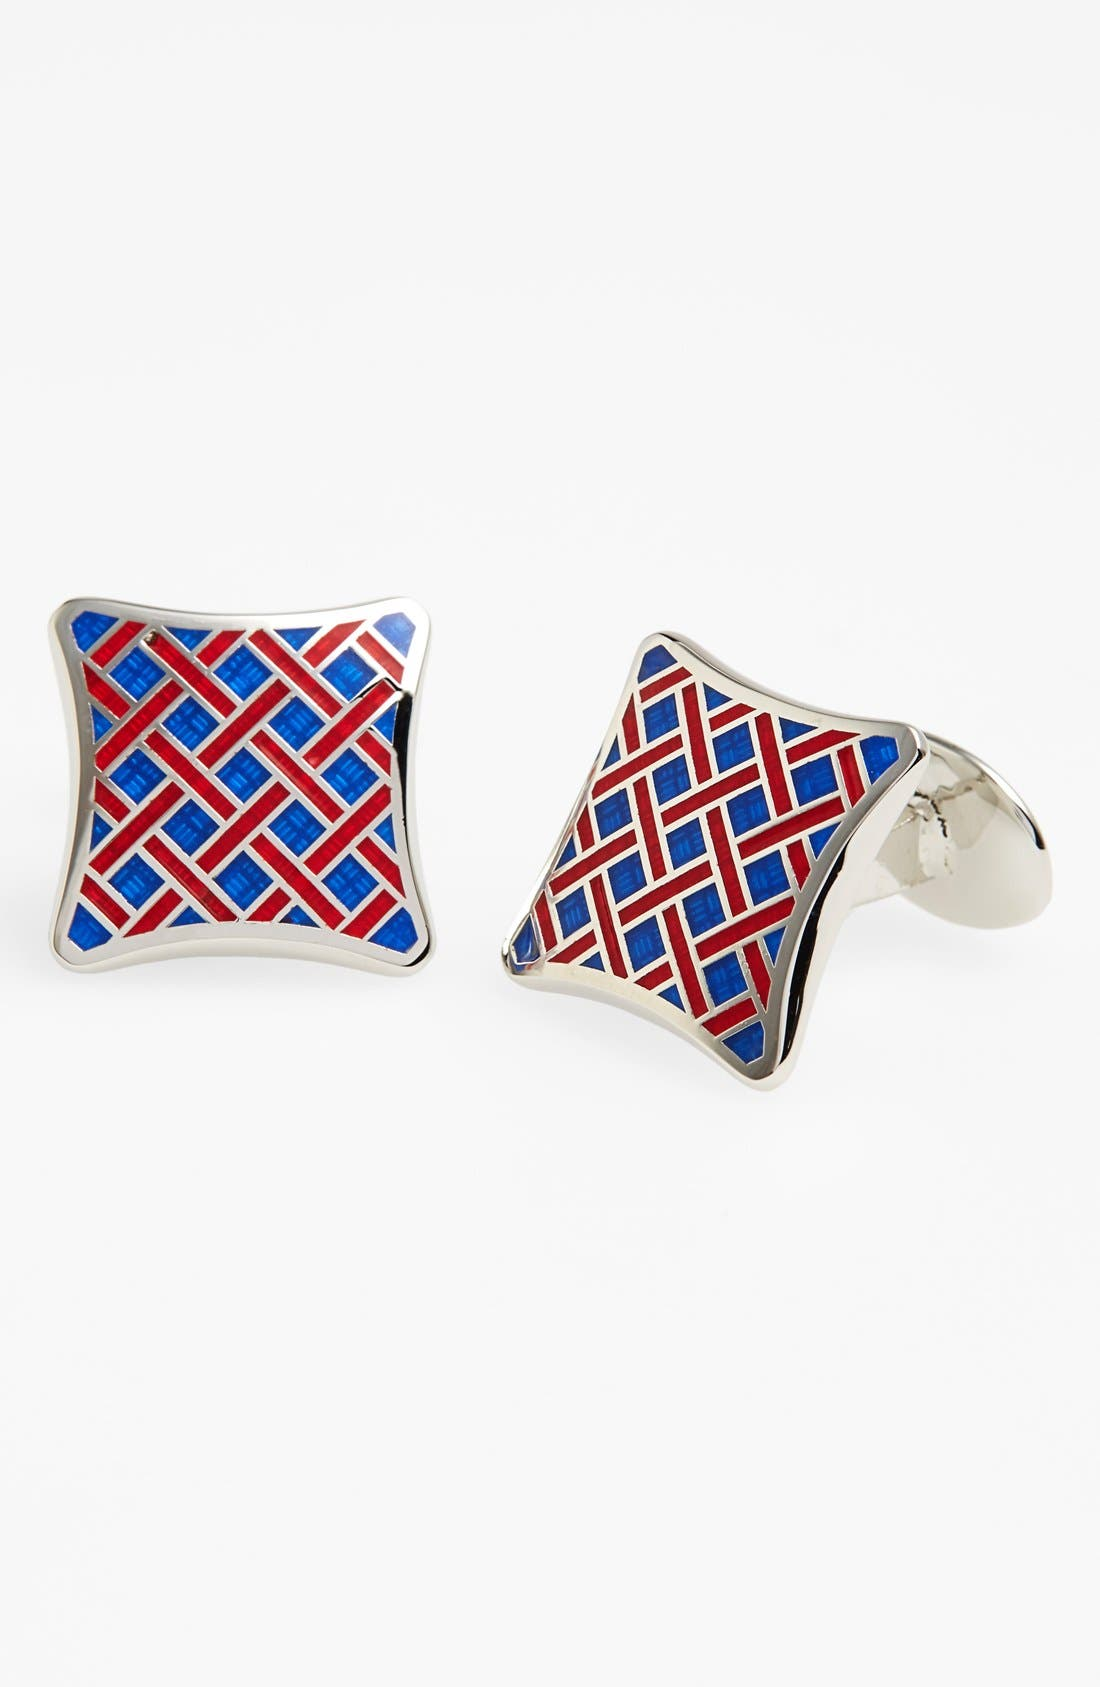 Basketweave Cuff Links,                         Main,                         color, Silver/ Blue/ Red